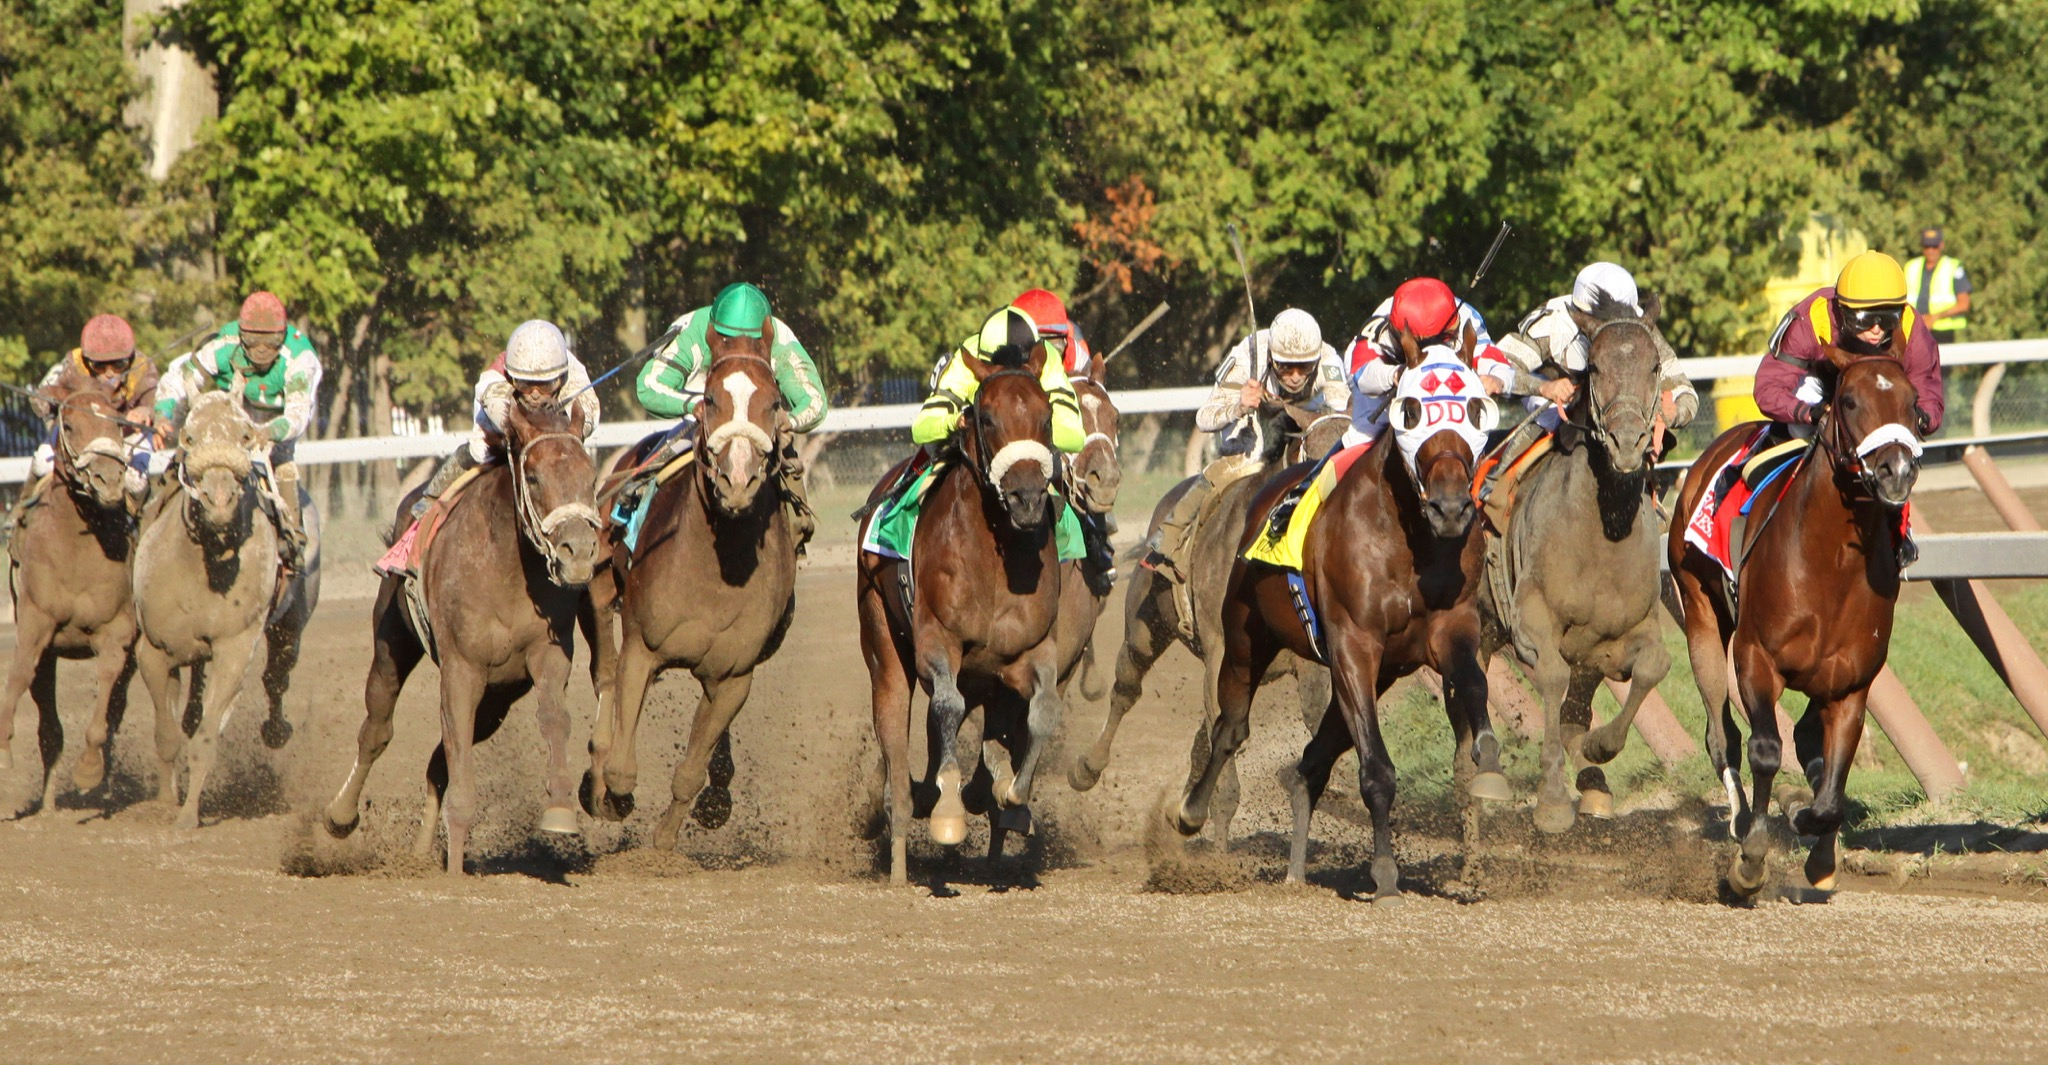 Who offers the best horse racing betting offers?